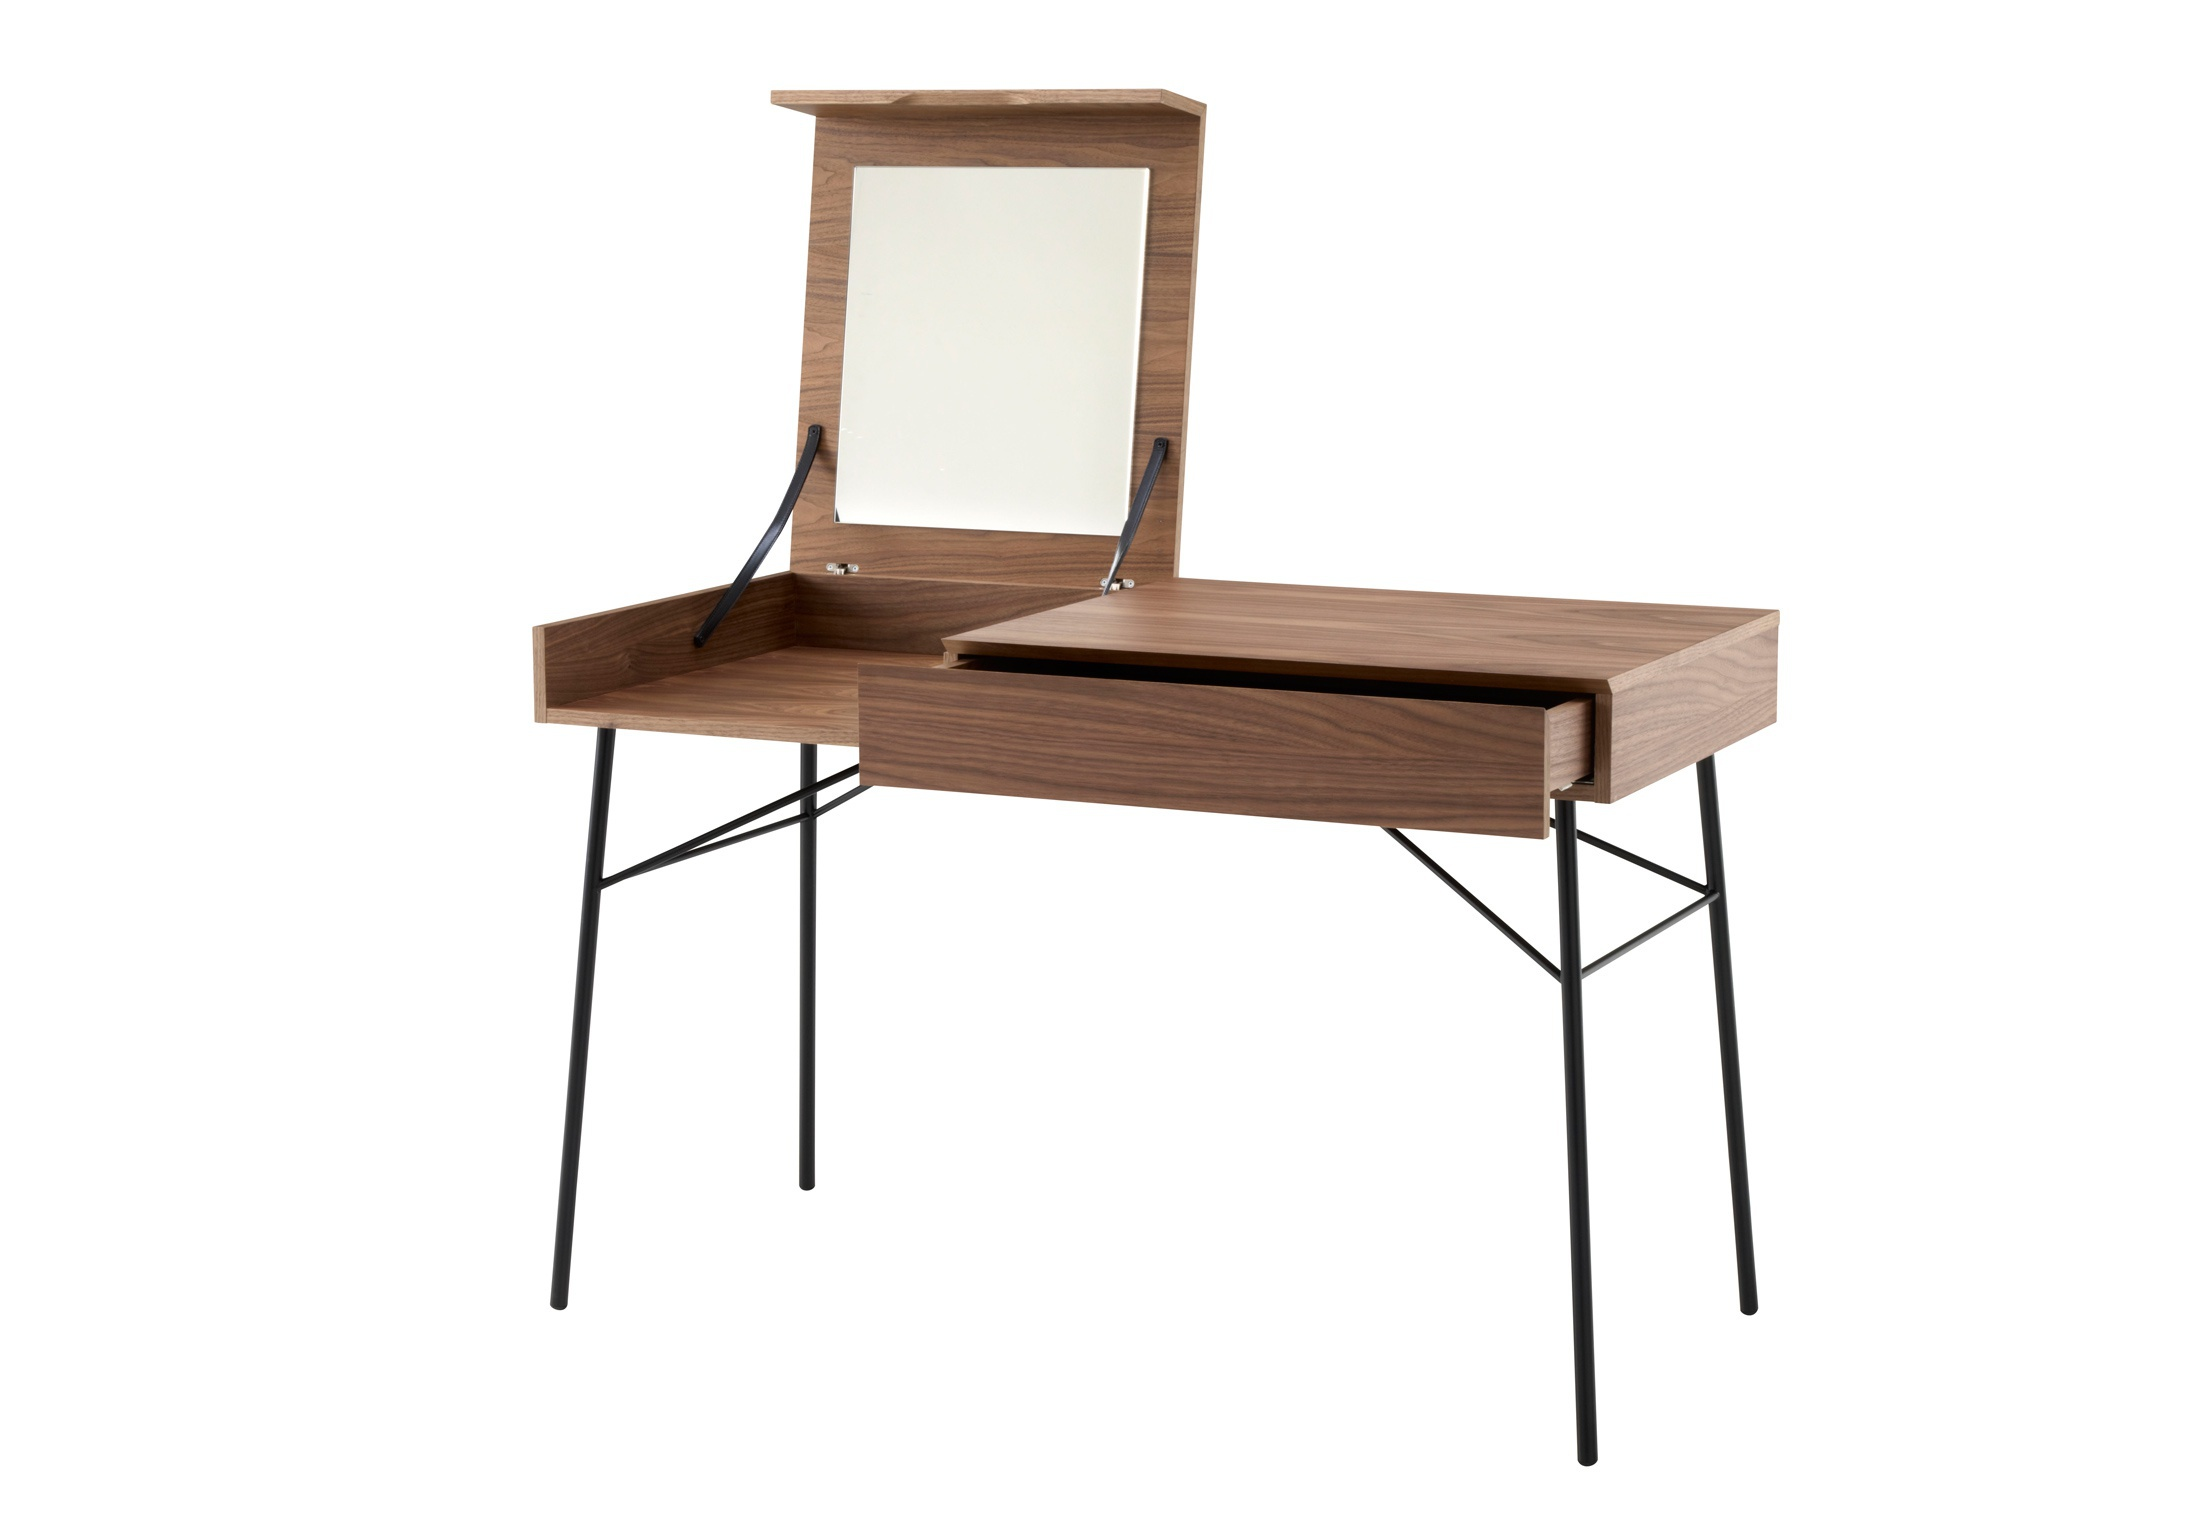 Dressing table made from natural wood juliette ligne for Made dressing table